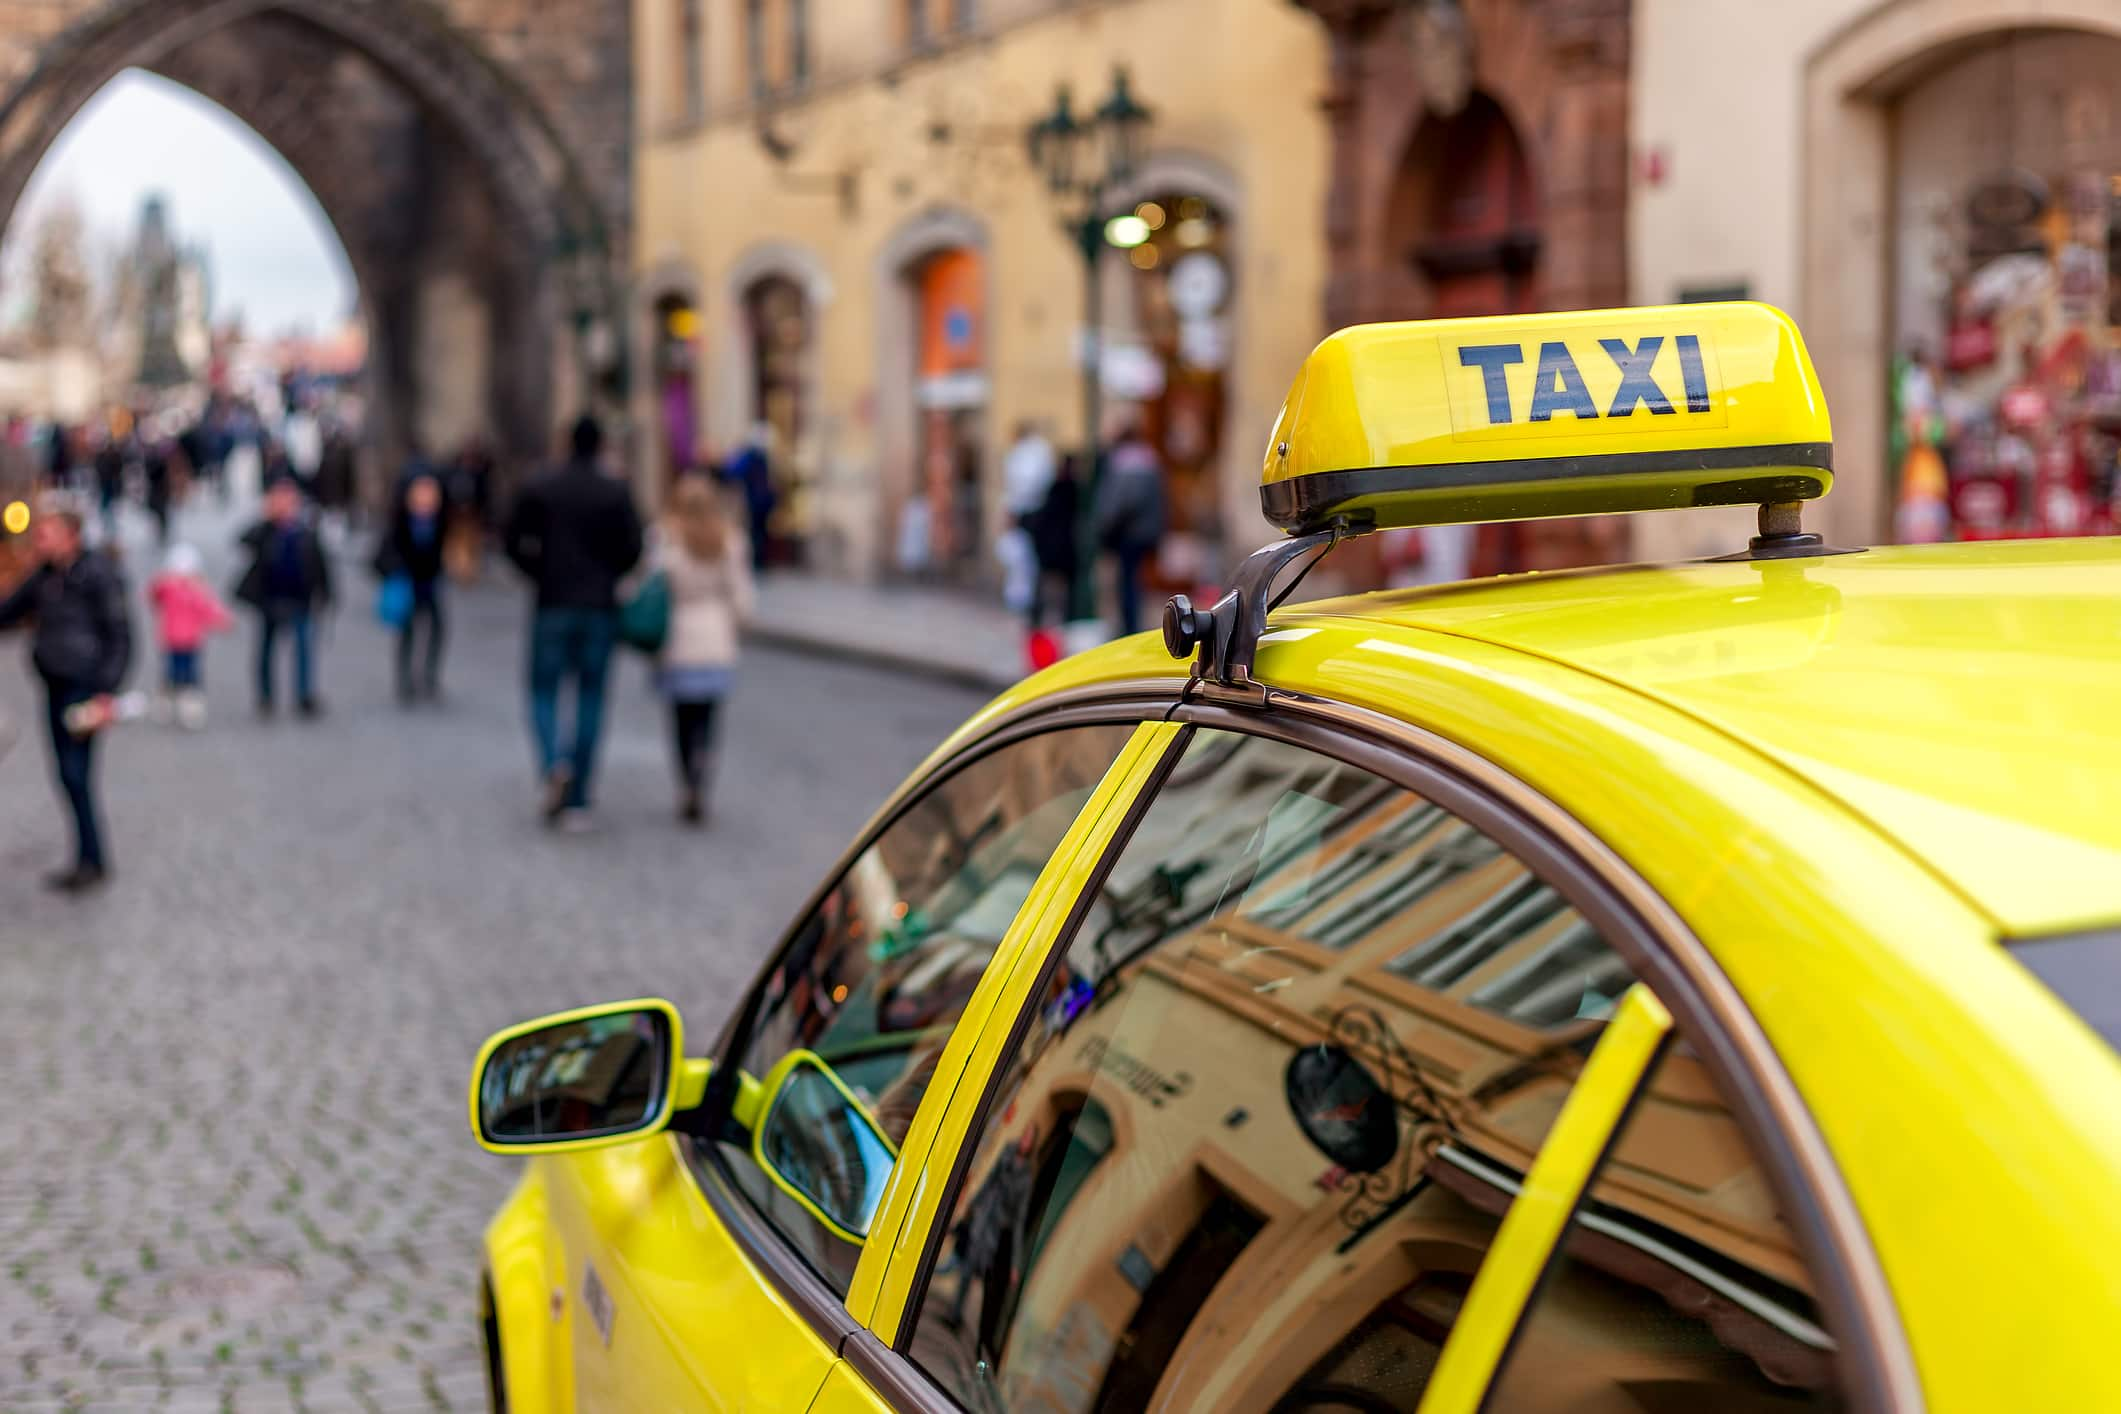 Prague taxi rates may rise for the first time in 13 years